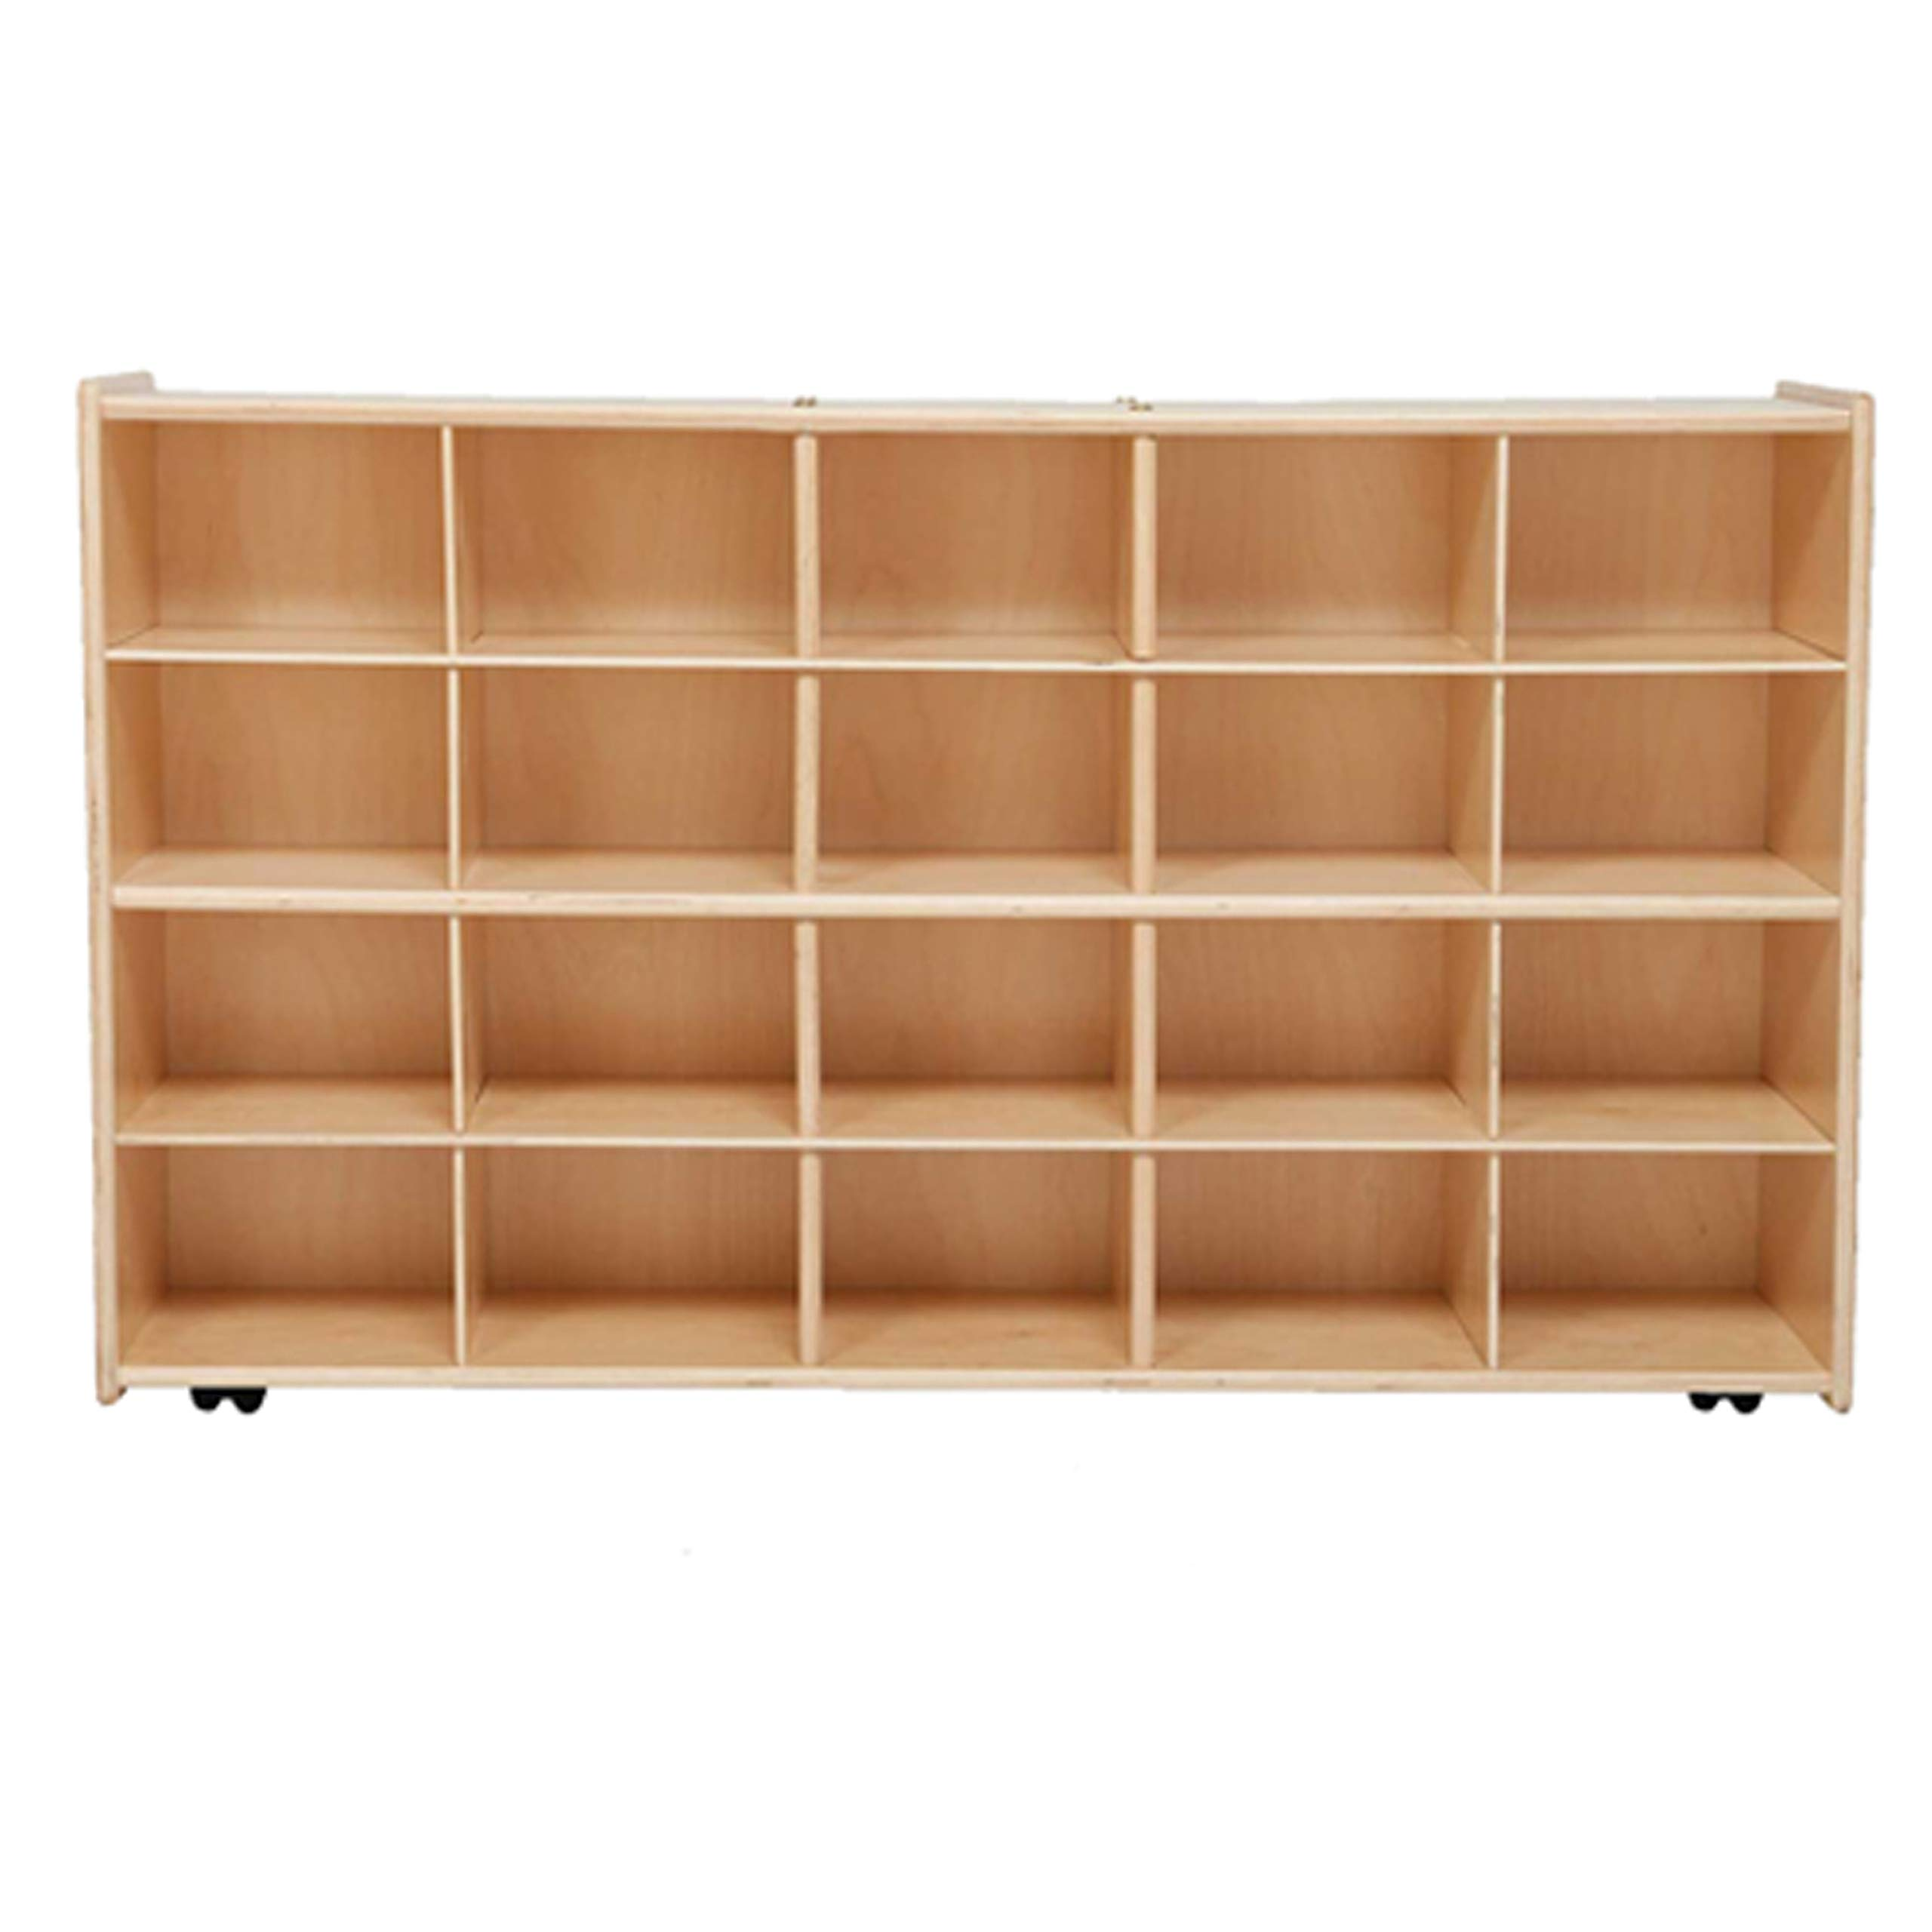 Contender Mobile 20 Tray Storage Without Trays - Assembled with Casters